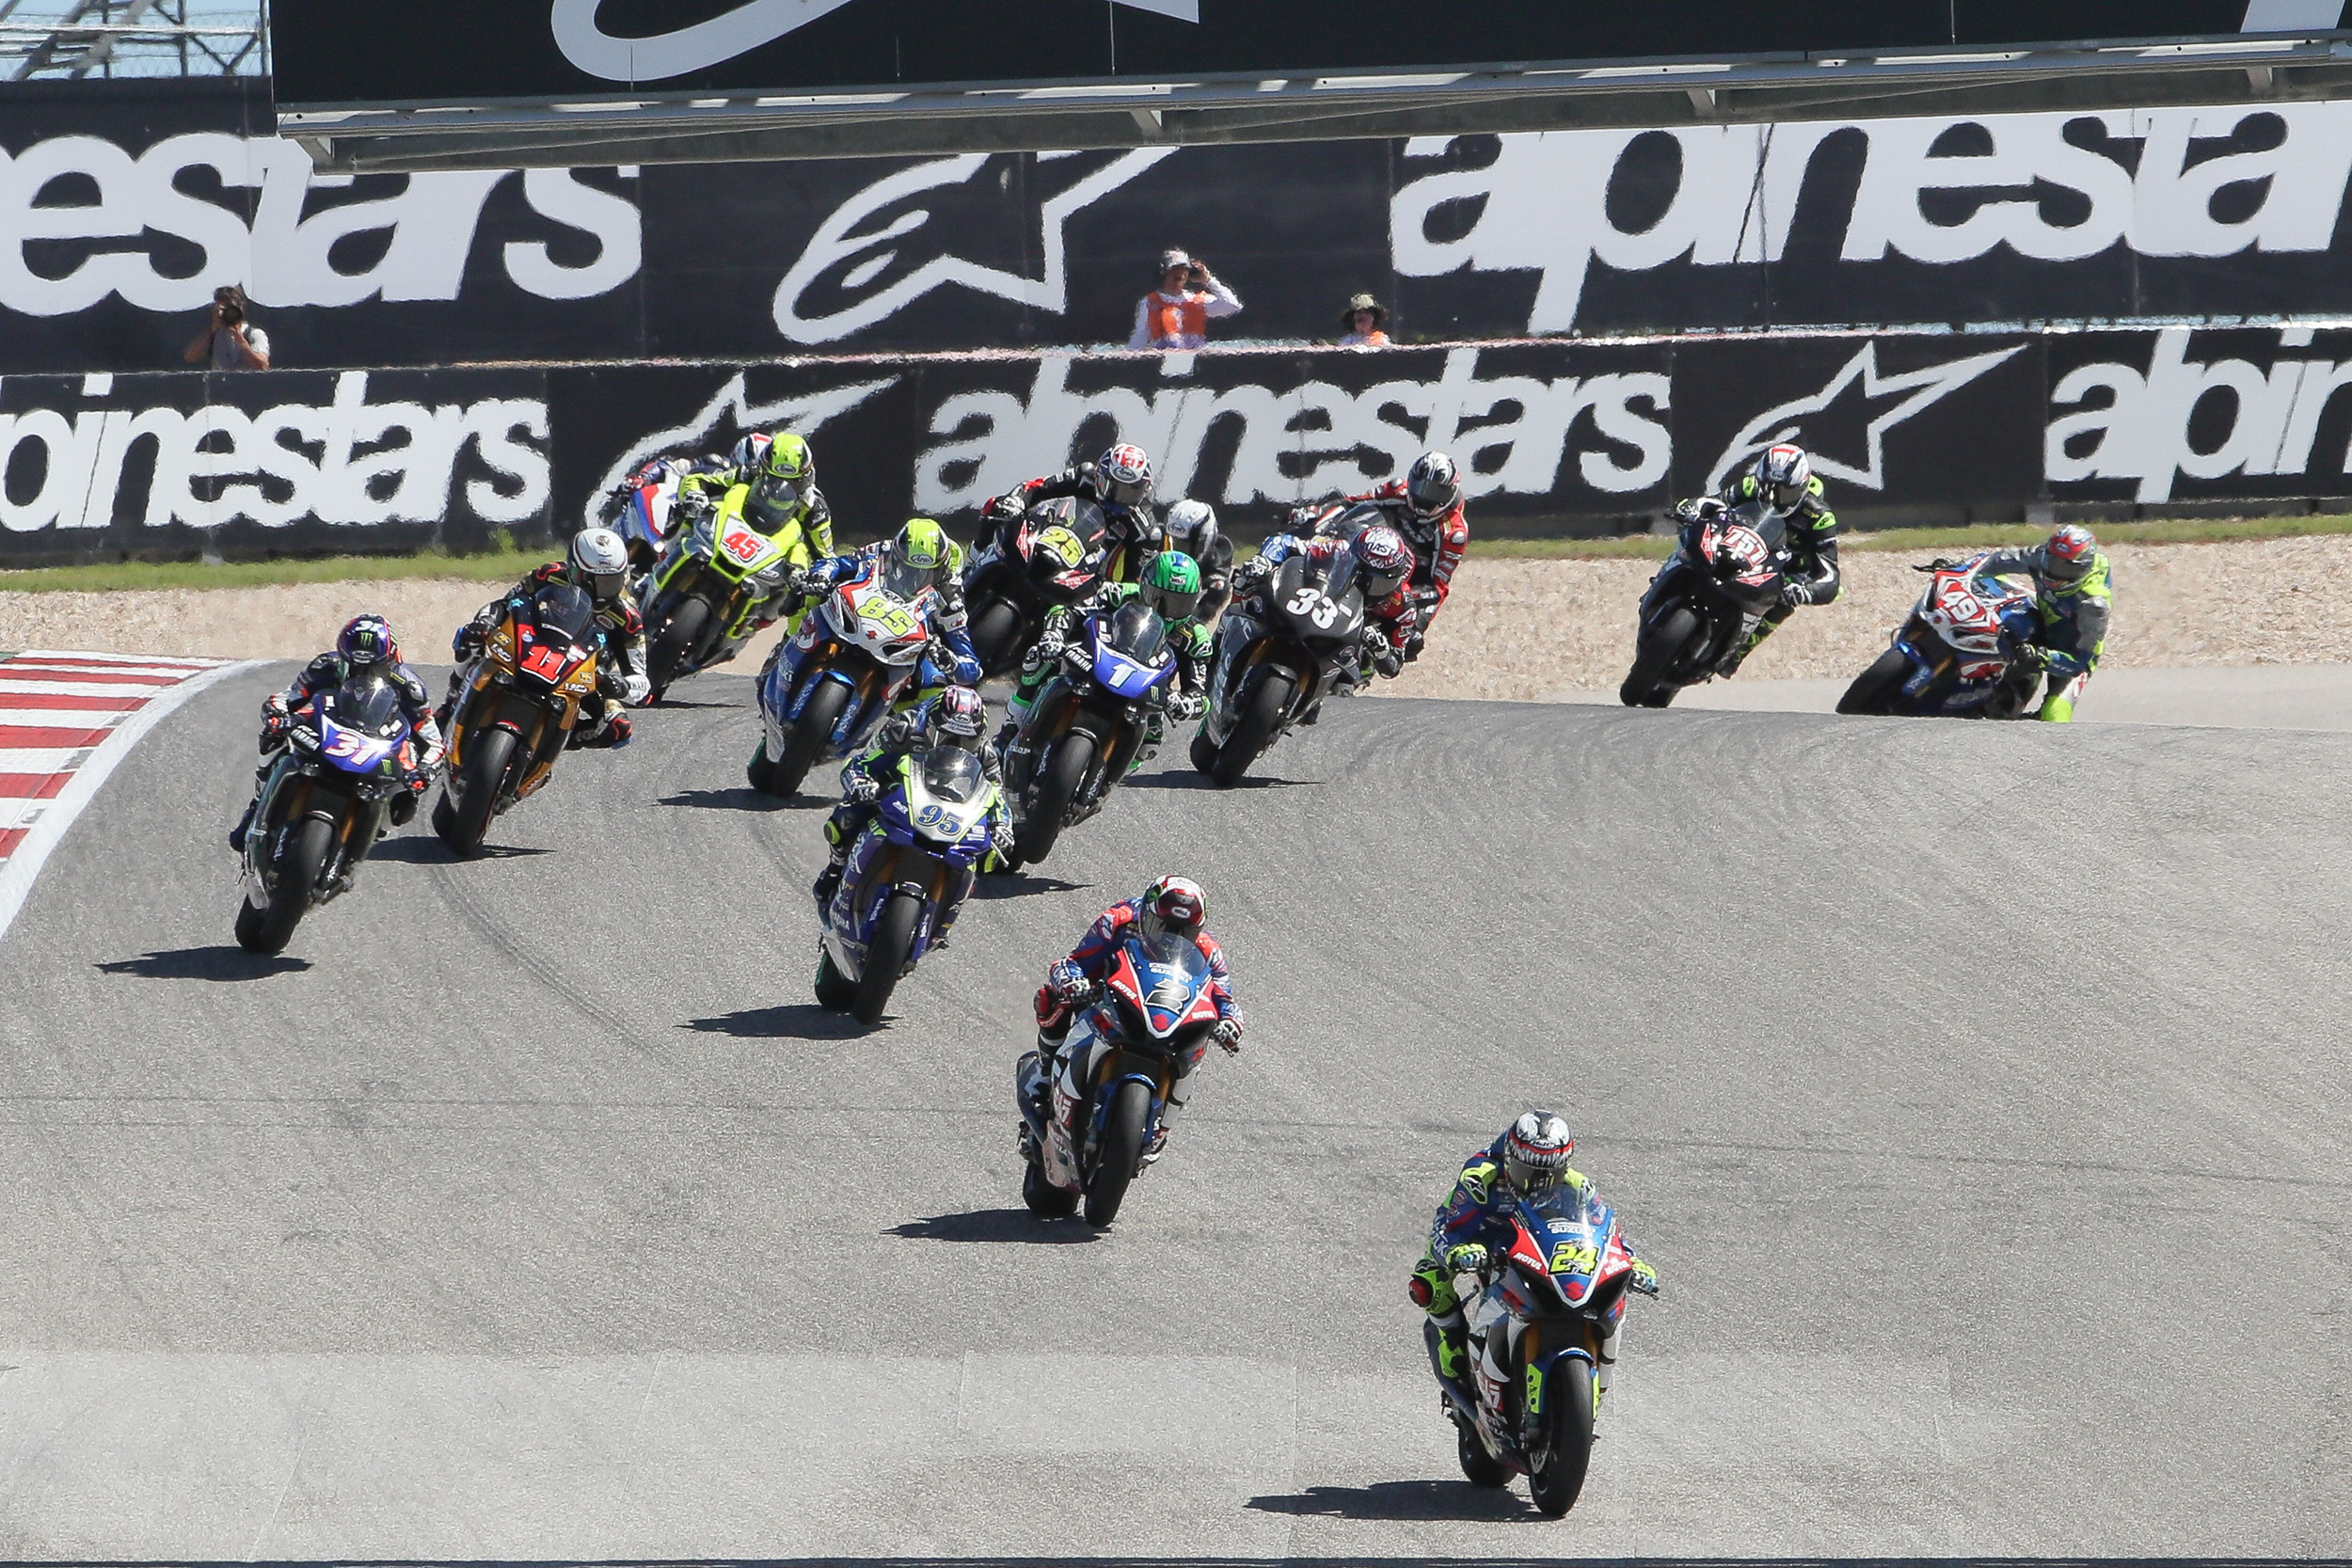 Toni Elias (24) led off the start of the second EBC Brakes Superbike race at COTA